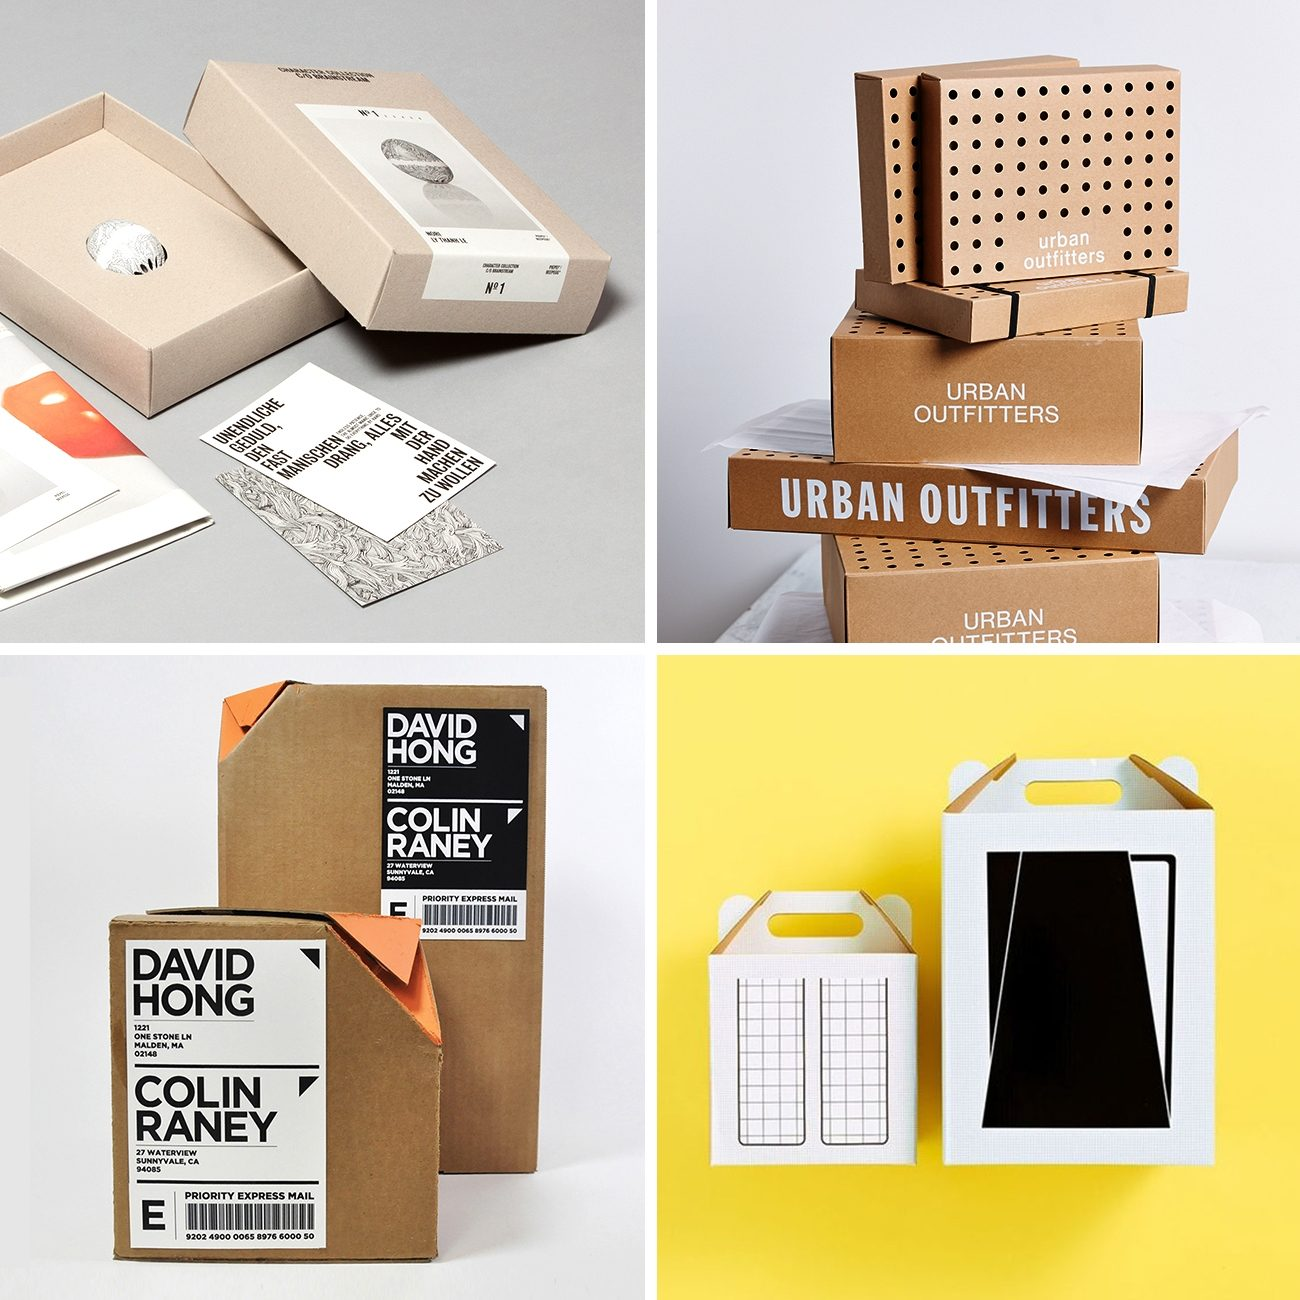 Photos via: A Practice for Everyday Life, Gabriel Klein, Ian Rousey, Chen Chen Hu, Allison Henry Aver 90 Ideas to Spruce Up Your Holiday Packaging Design